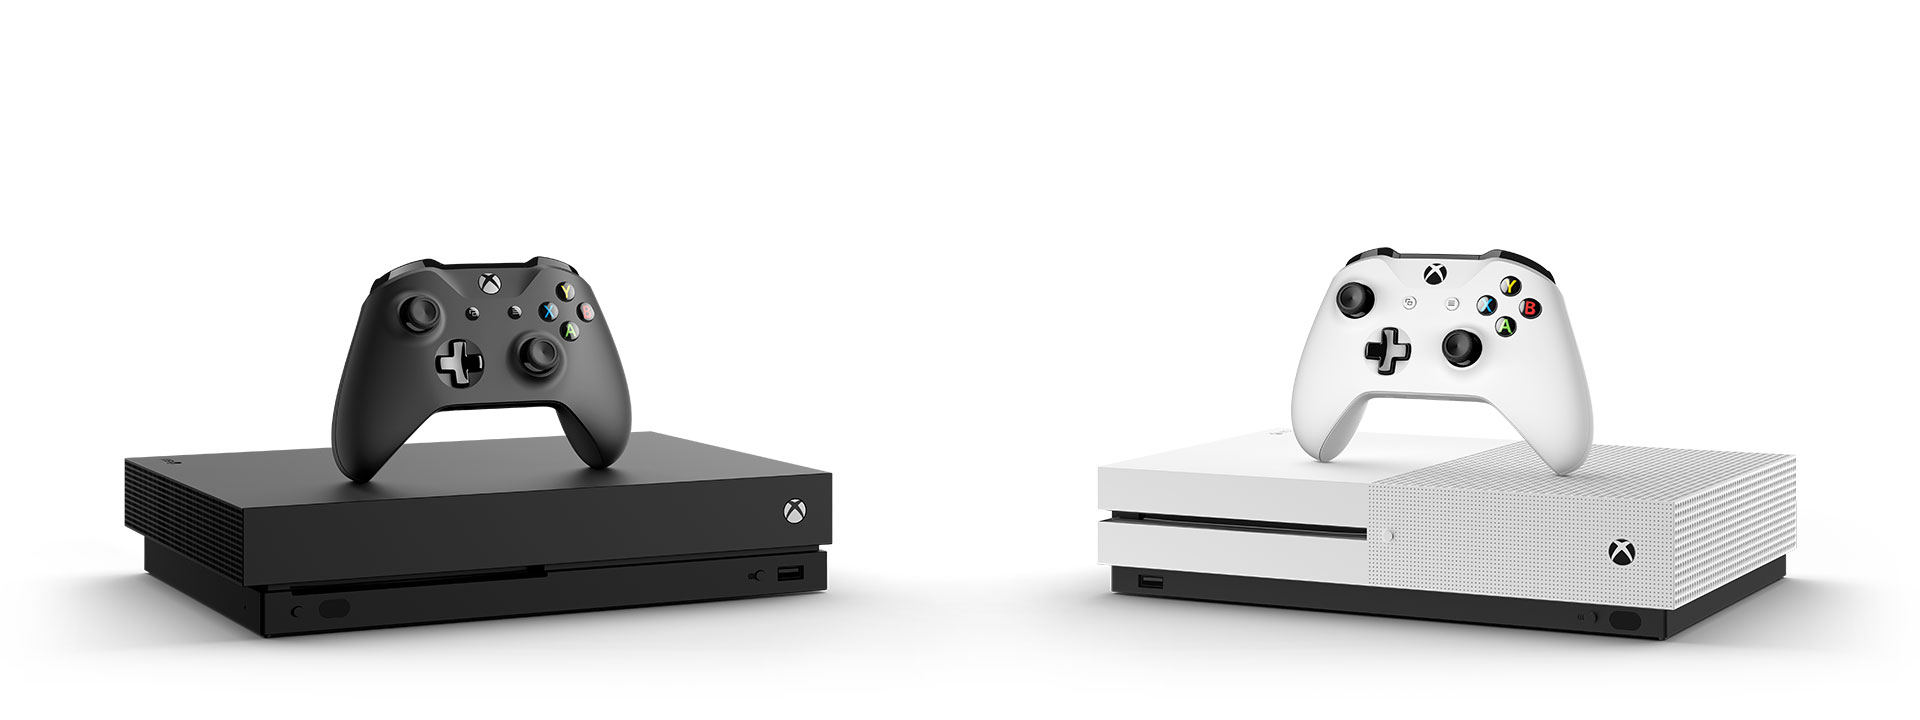 Black and white Xbox One consoles with black and white controllers on top